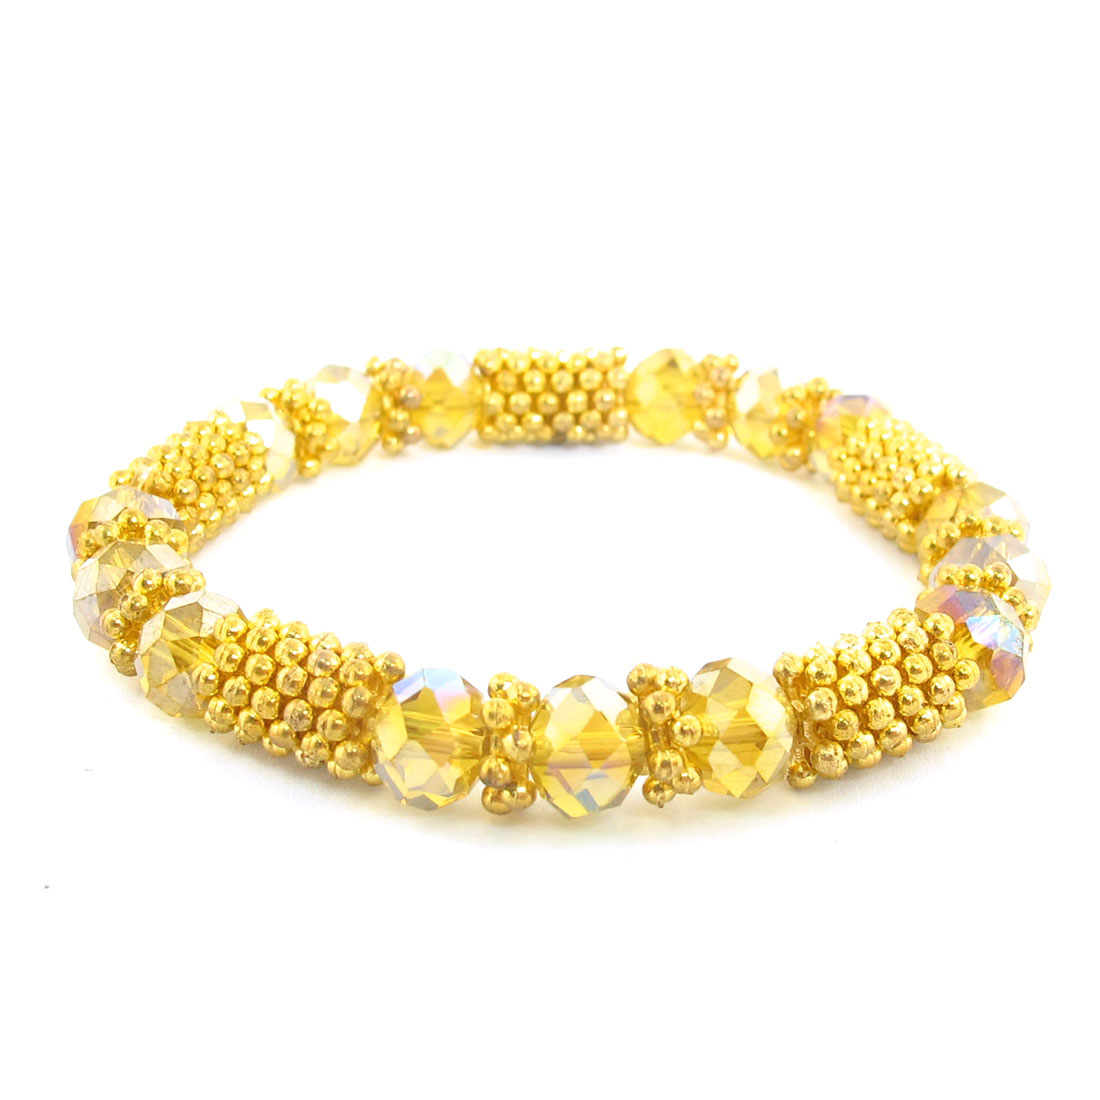 Yellow Snowflake Connection Faux Beaded Wrist Bangle Stretchy for Women Bracelet